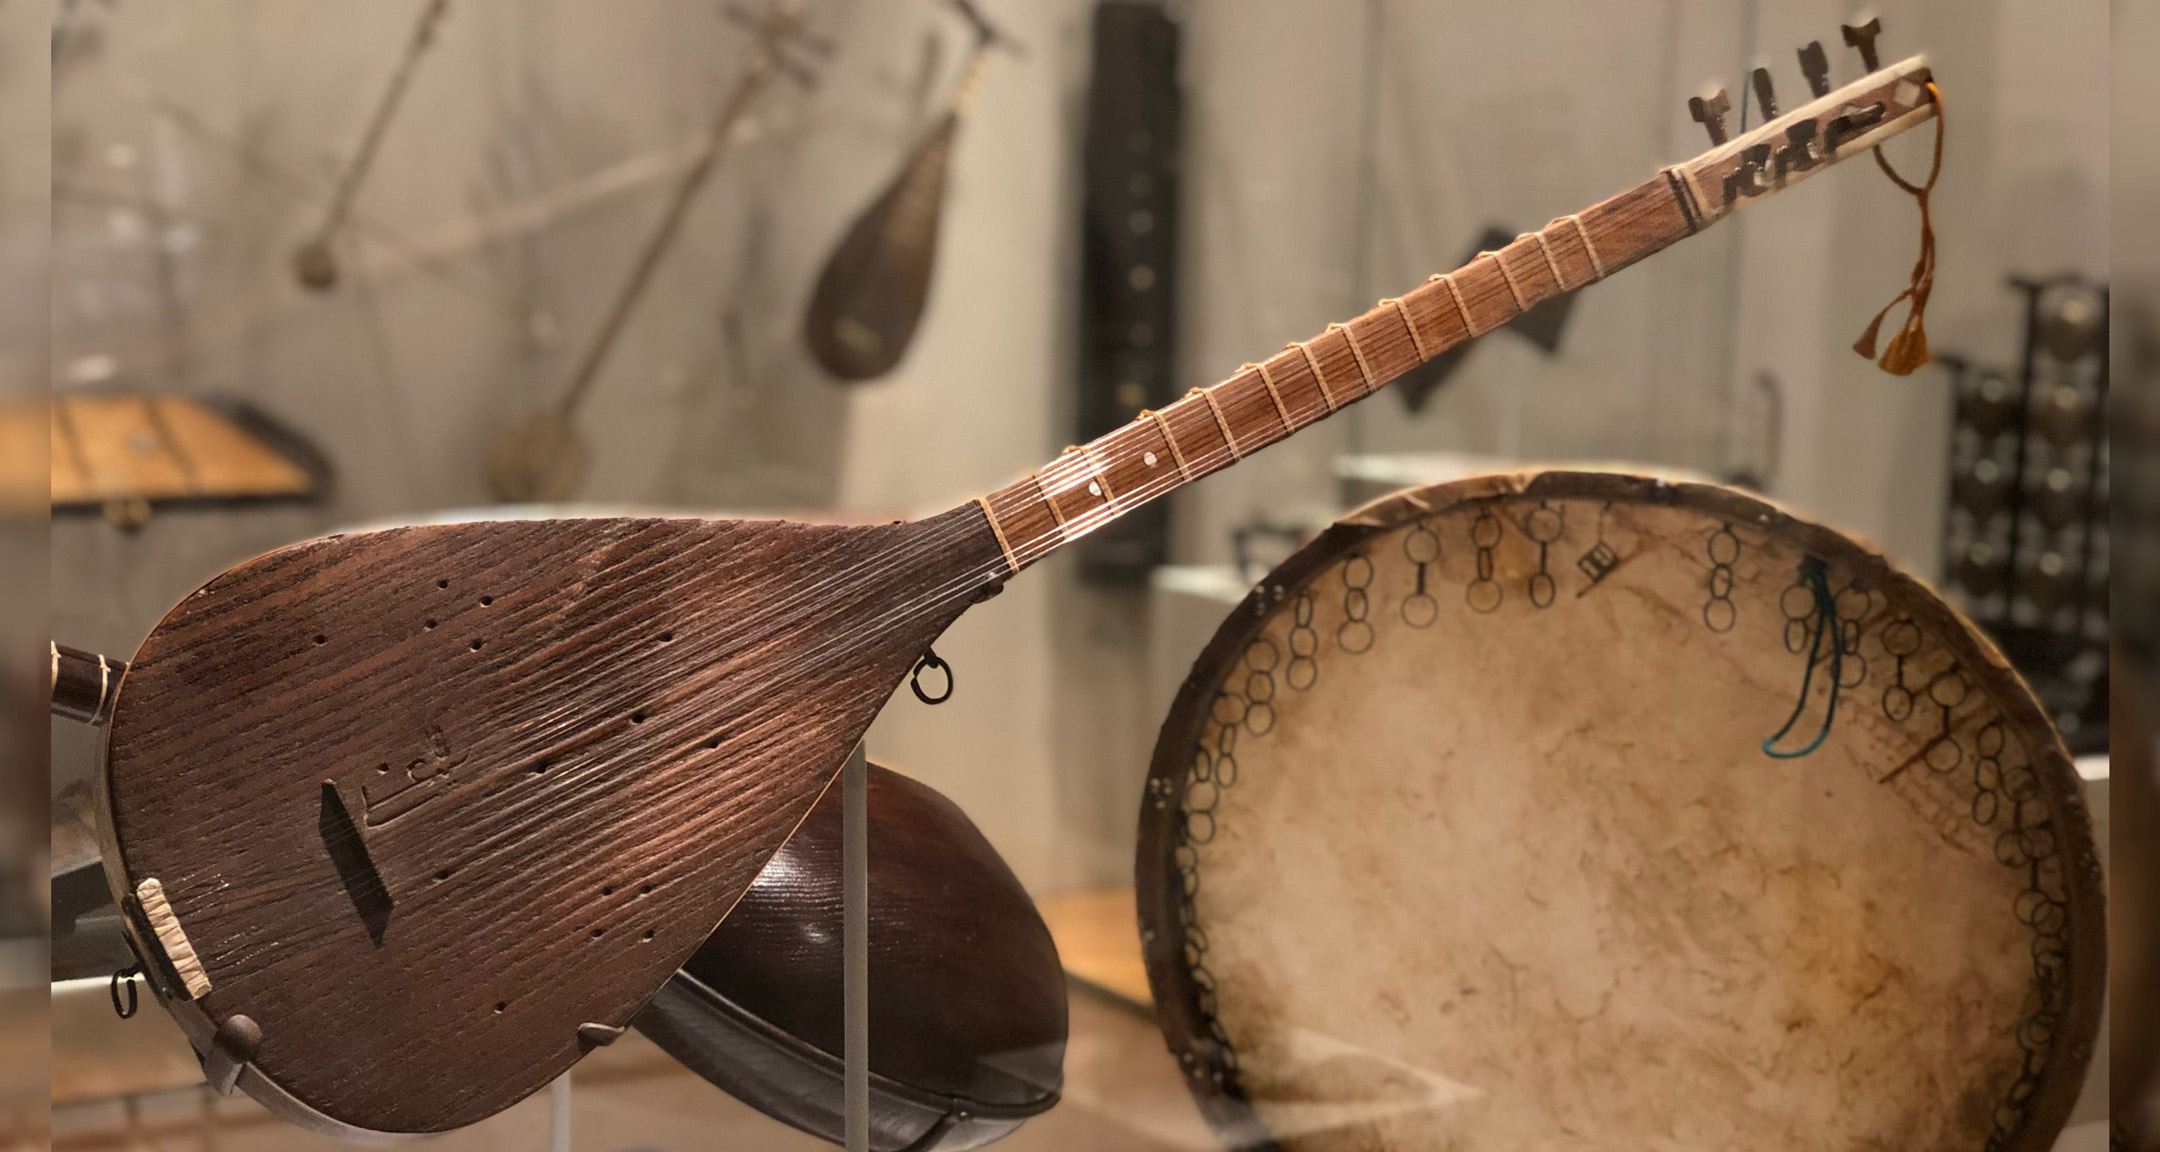 Showcase of Ostad Elahi's instruments at the MET